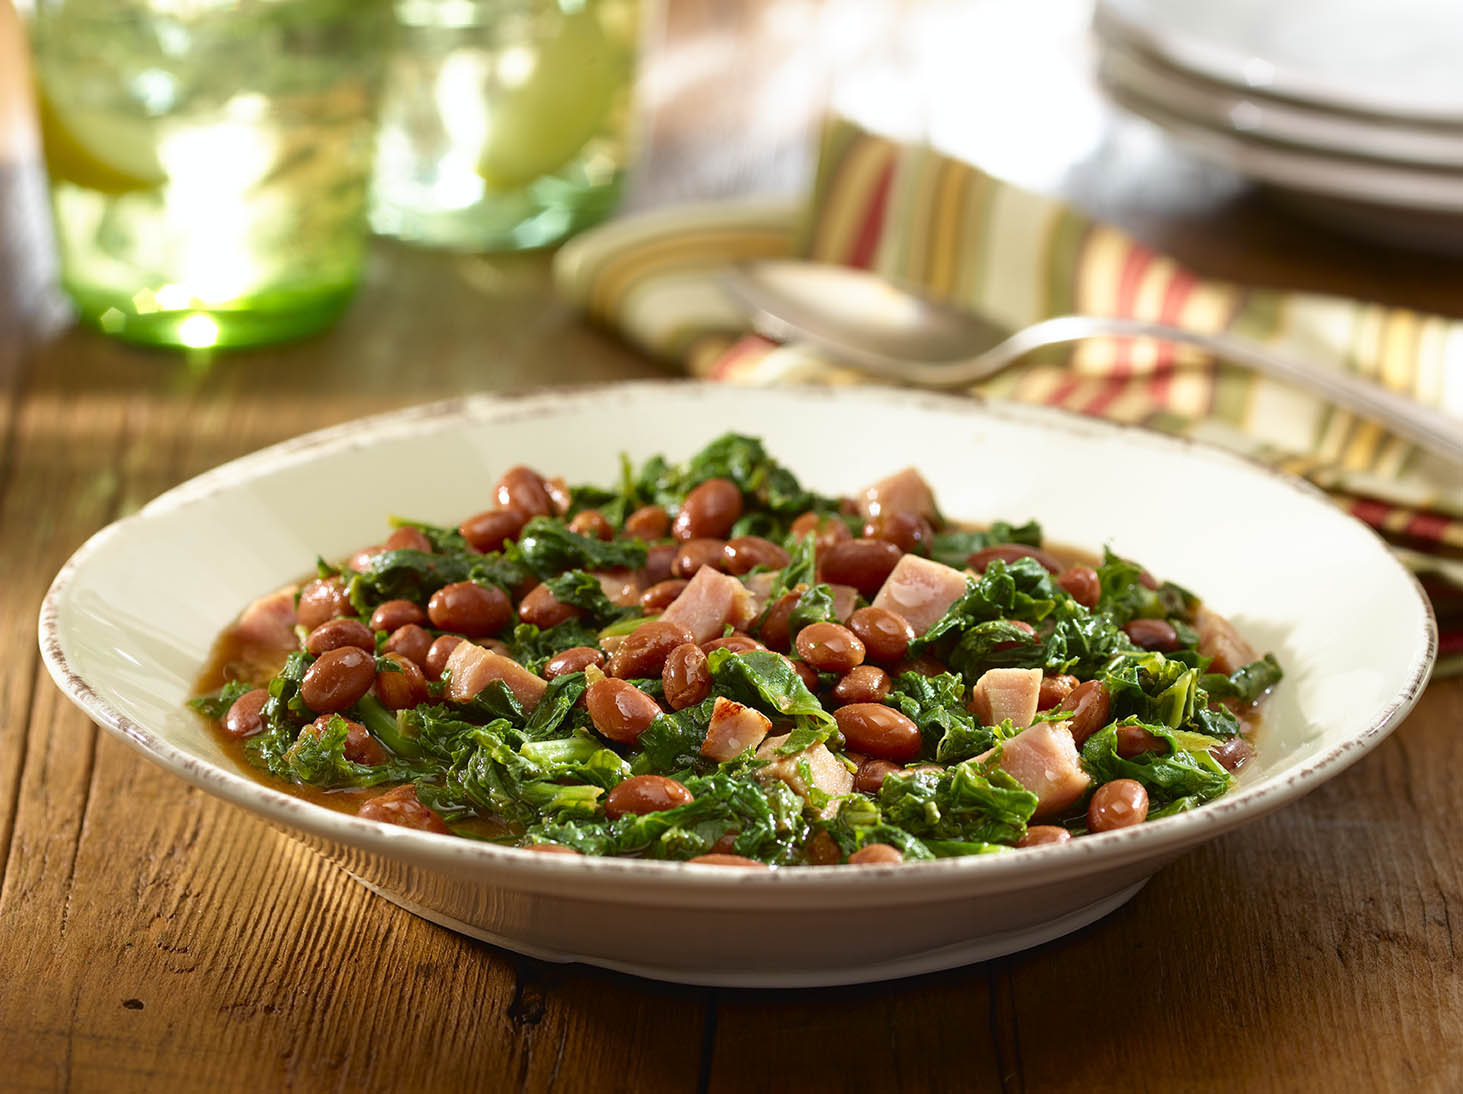 Braised Kale with Pink Beans and Ham